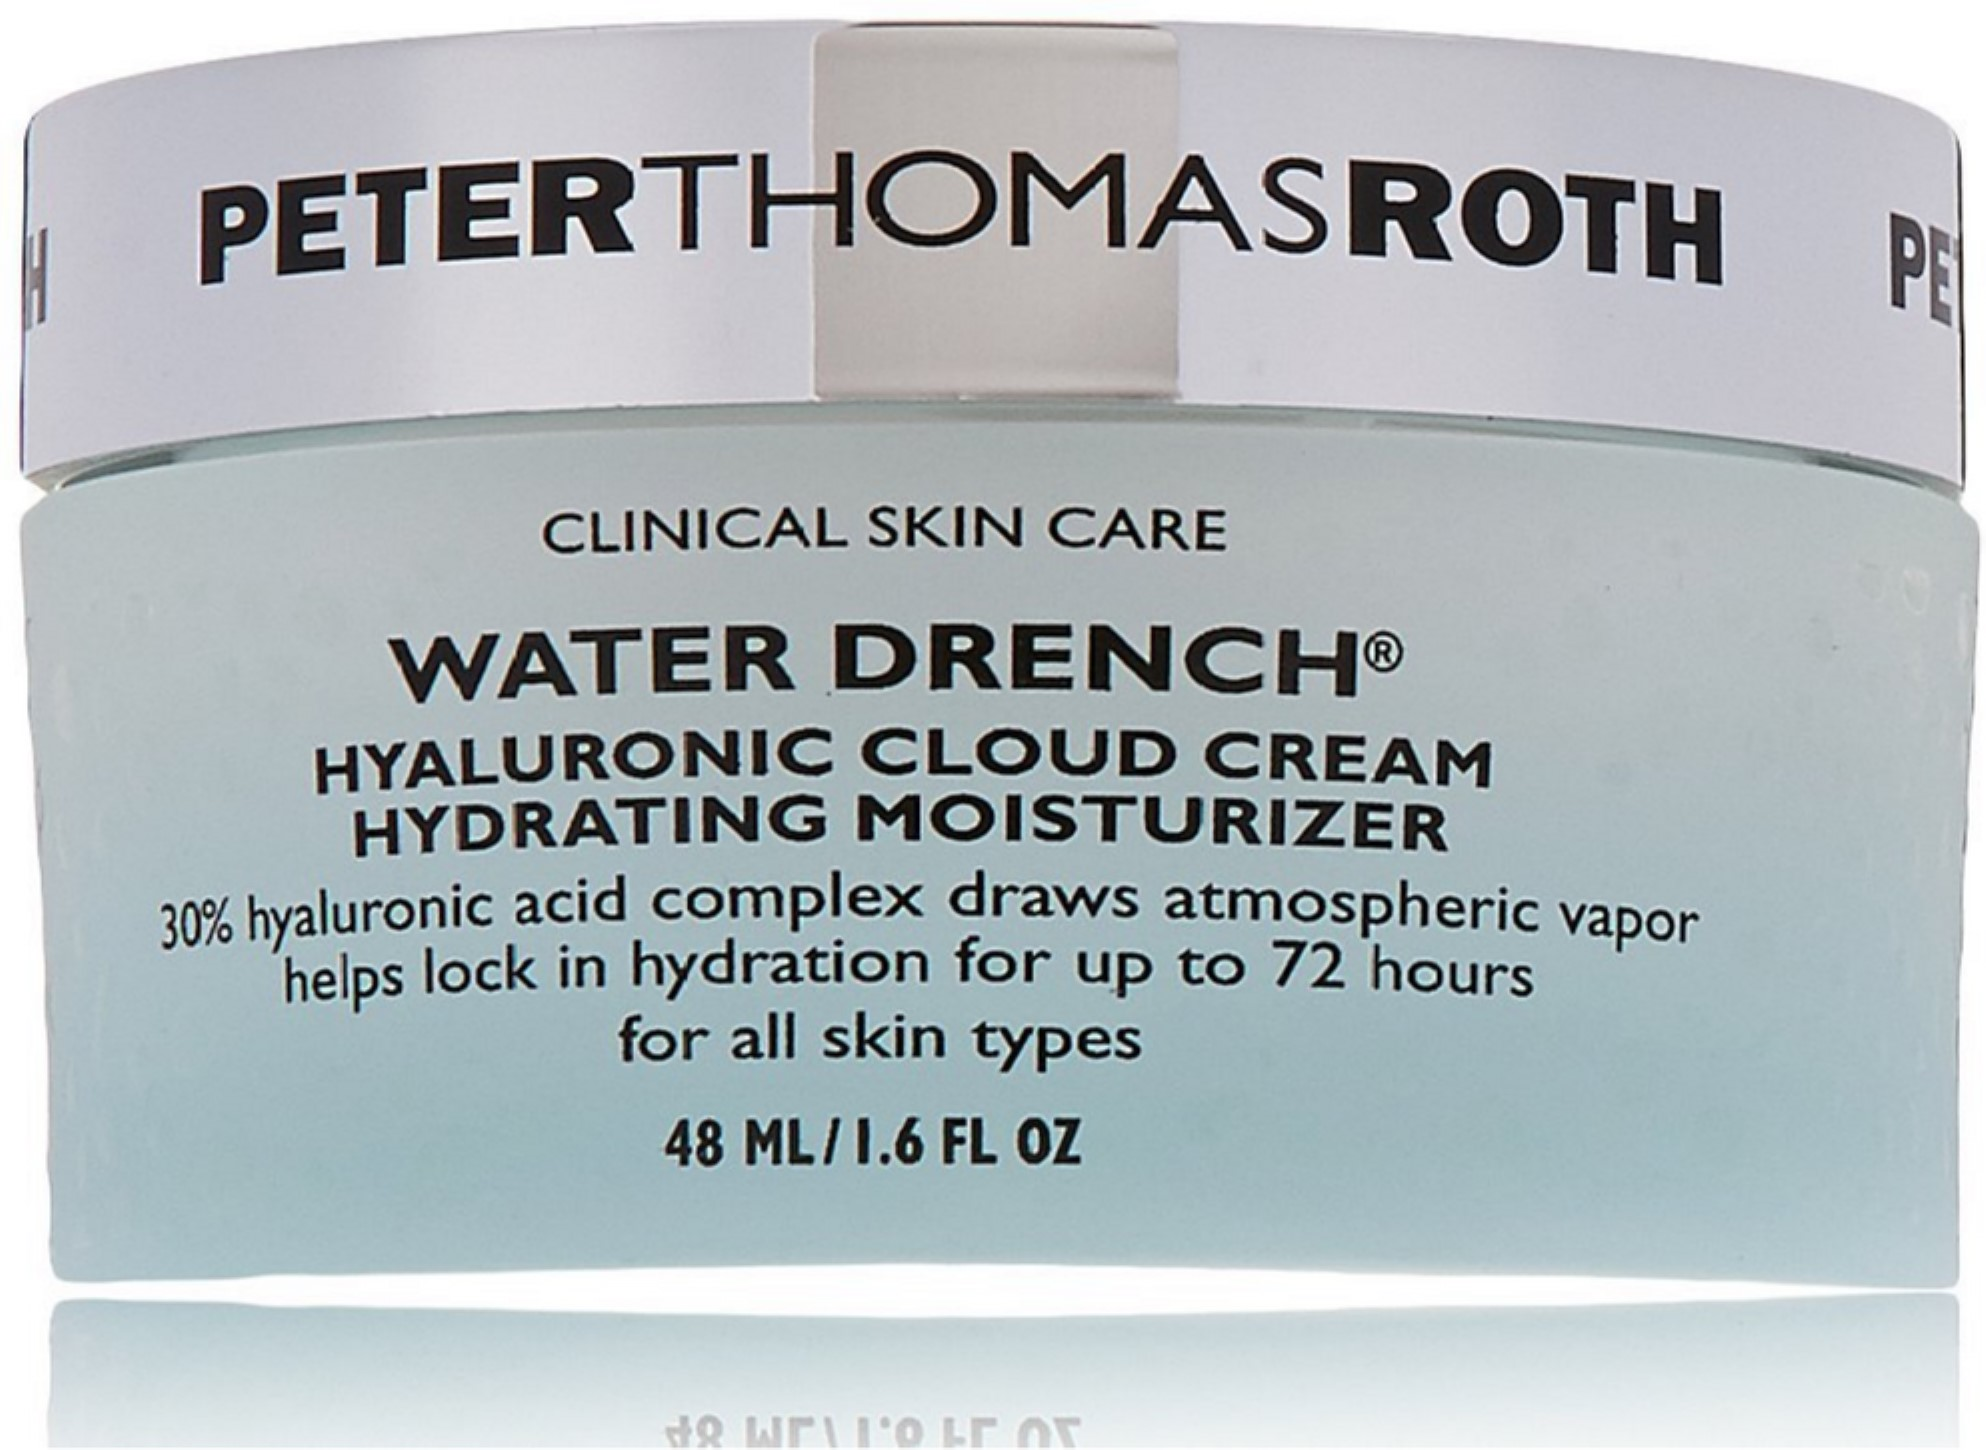 6 Pack - Peter Thomas Roth Water Drench Hyaluronic Cloud Cream 1.6 oz Yes To Carrots Fragrance-Free Gentle Cleansing Wipes, 25 Count (Pack of 3) + 3 Count Eyebrow Trimmer